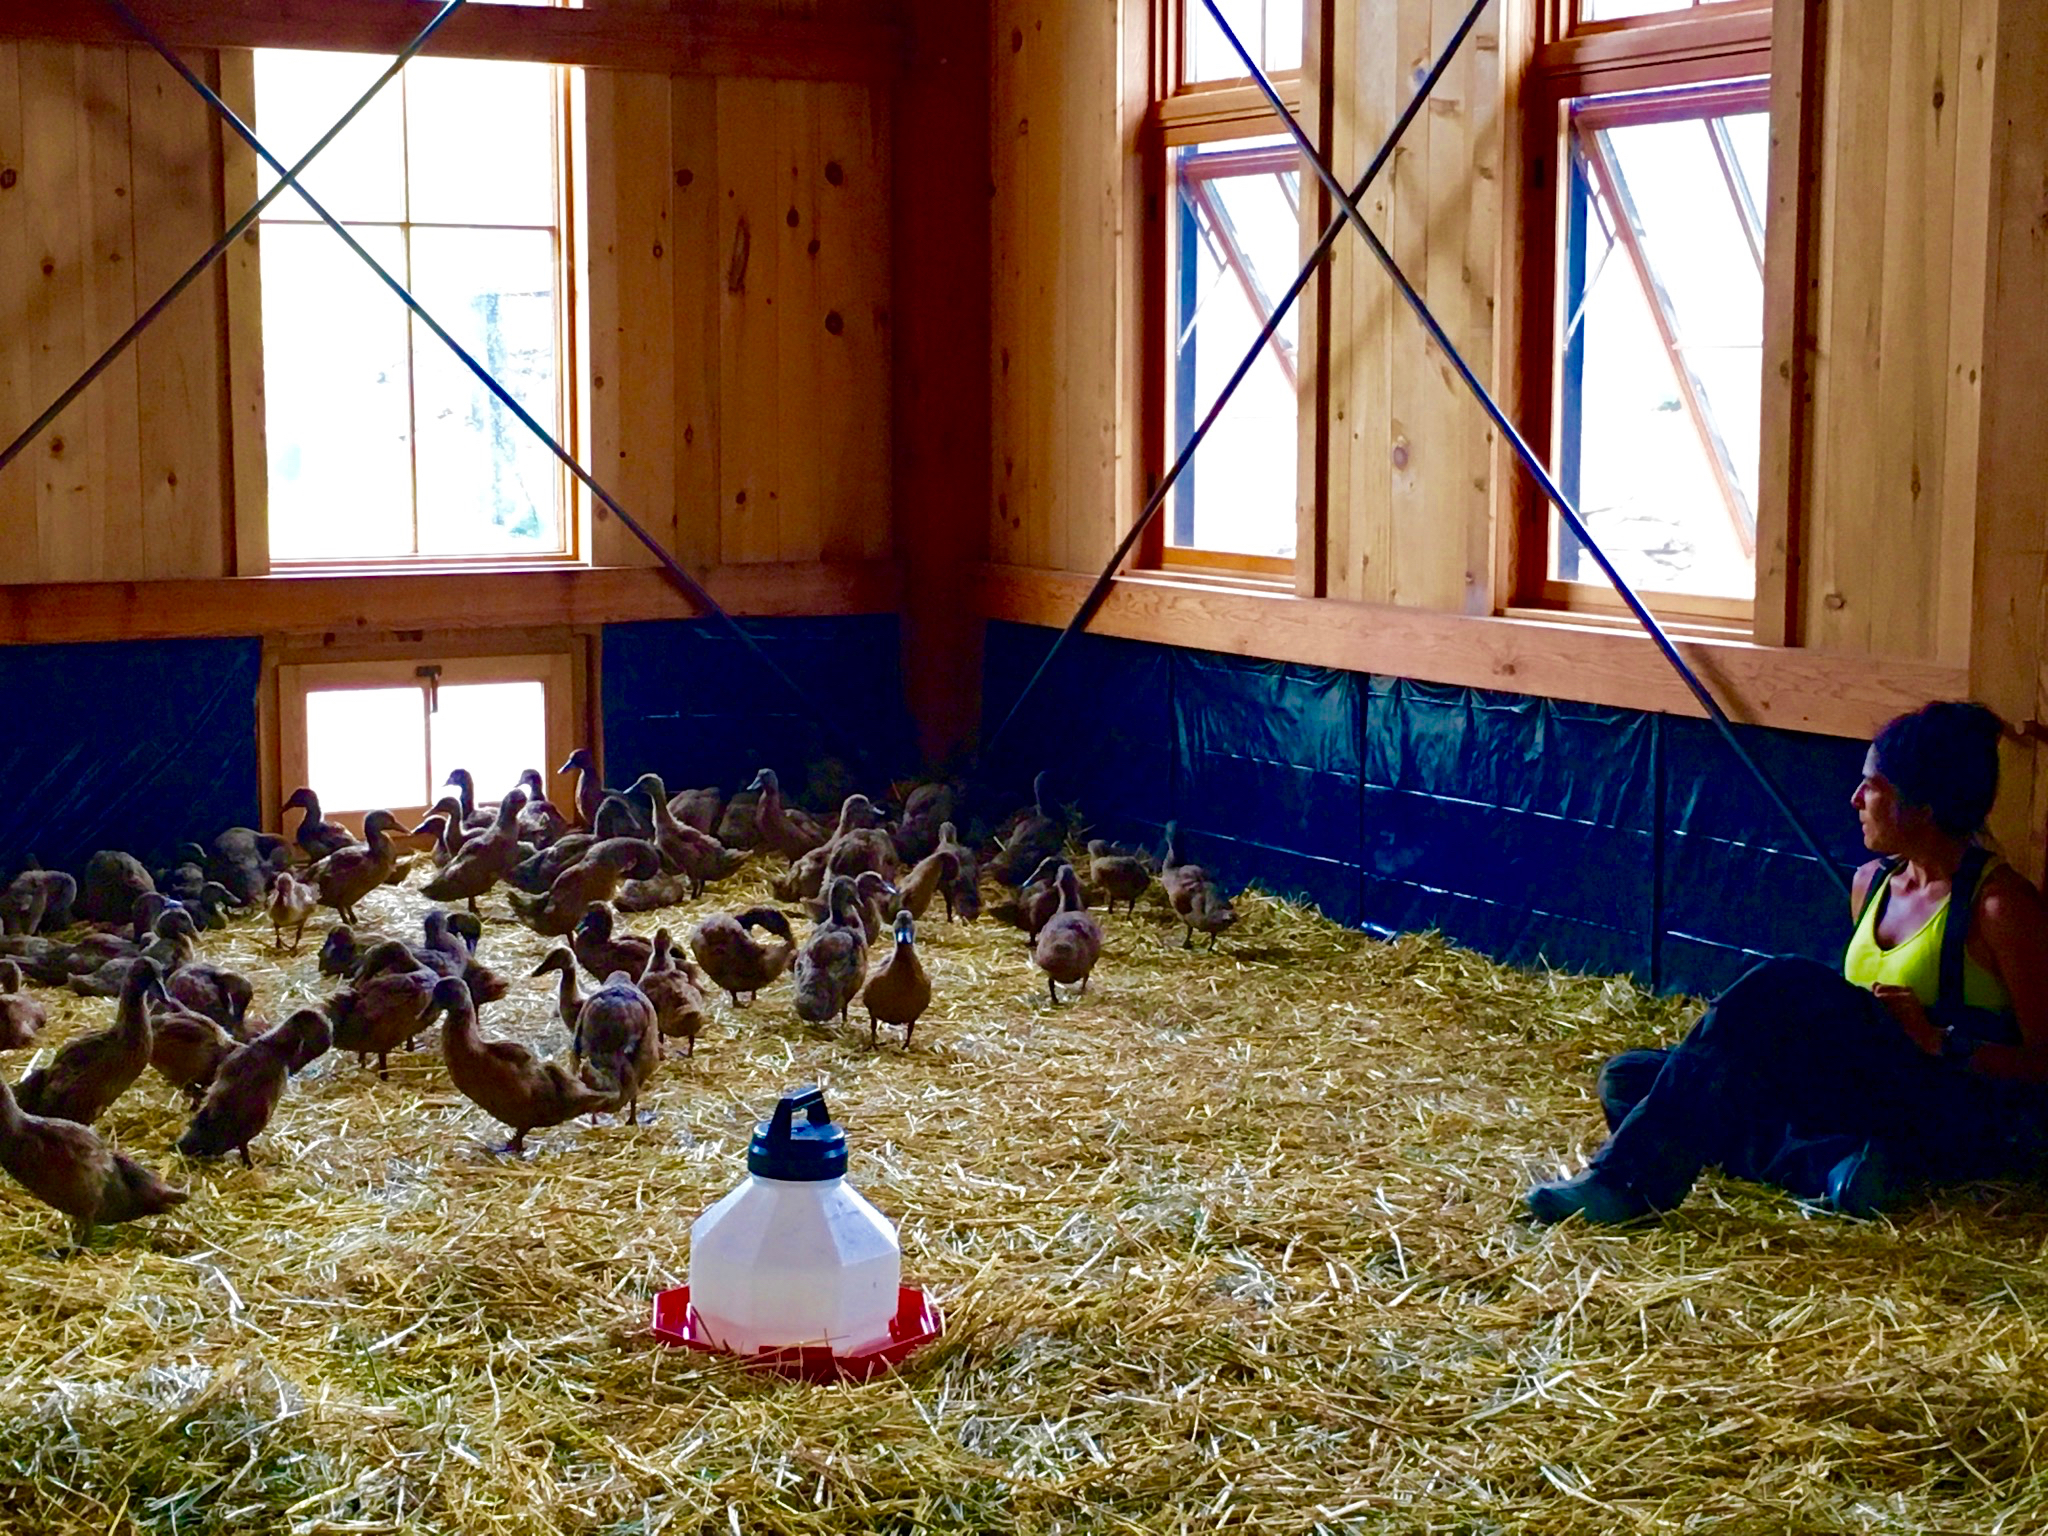 Newly-arrived to their new home, in the energy barn with Shawn